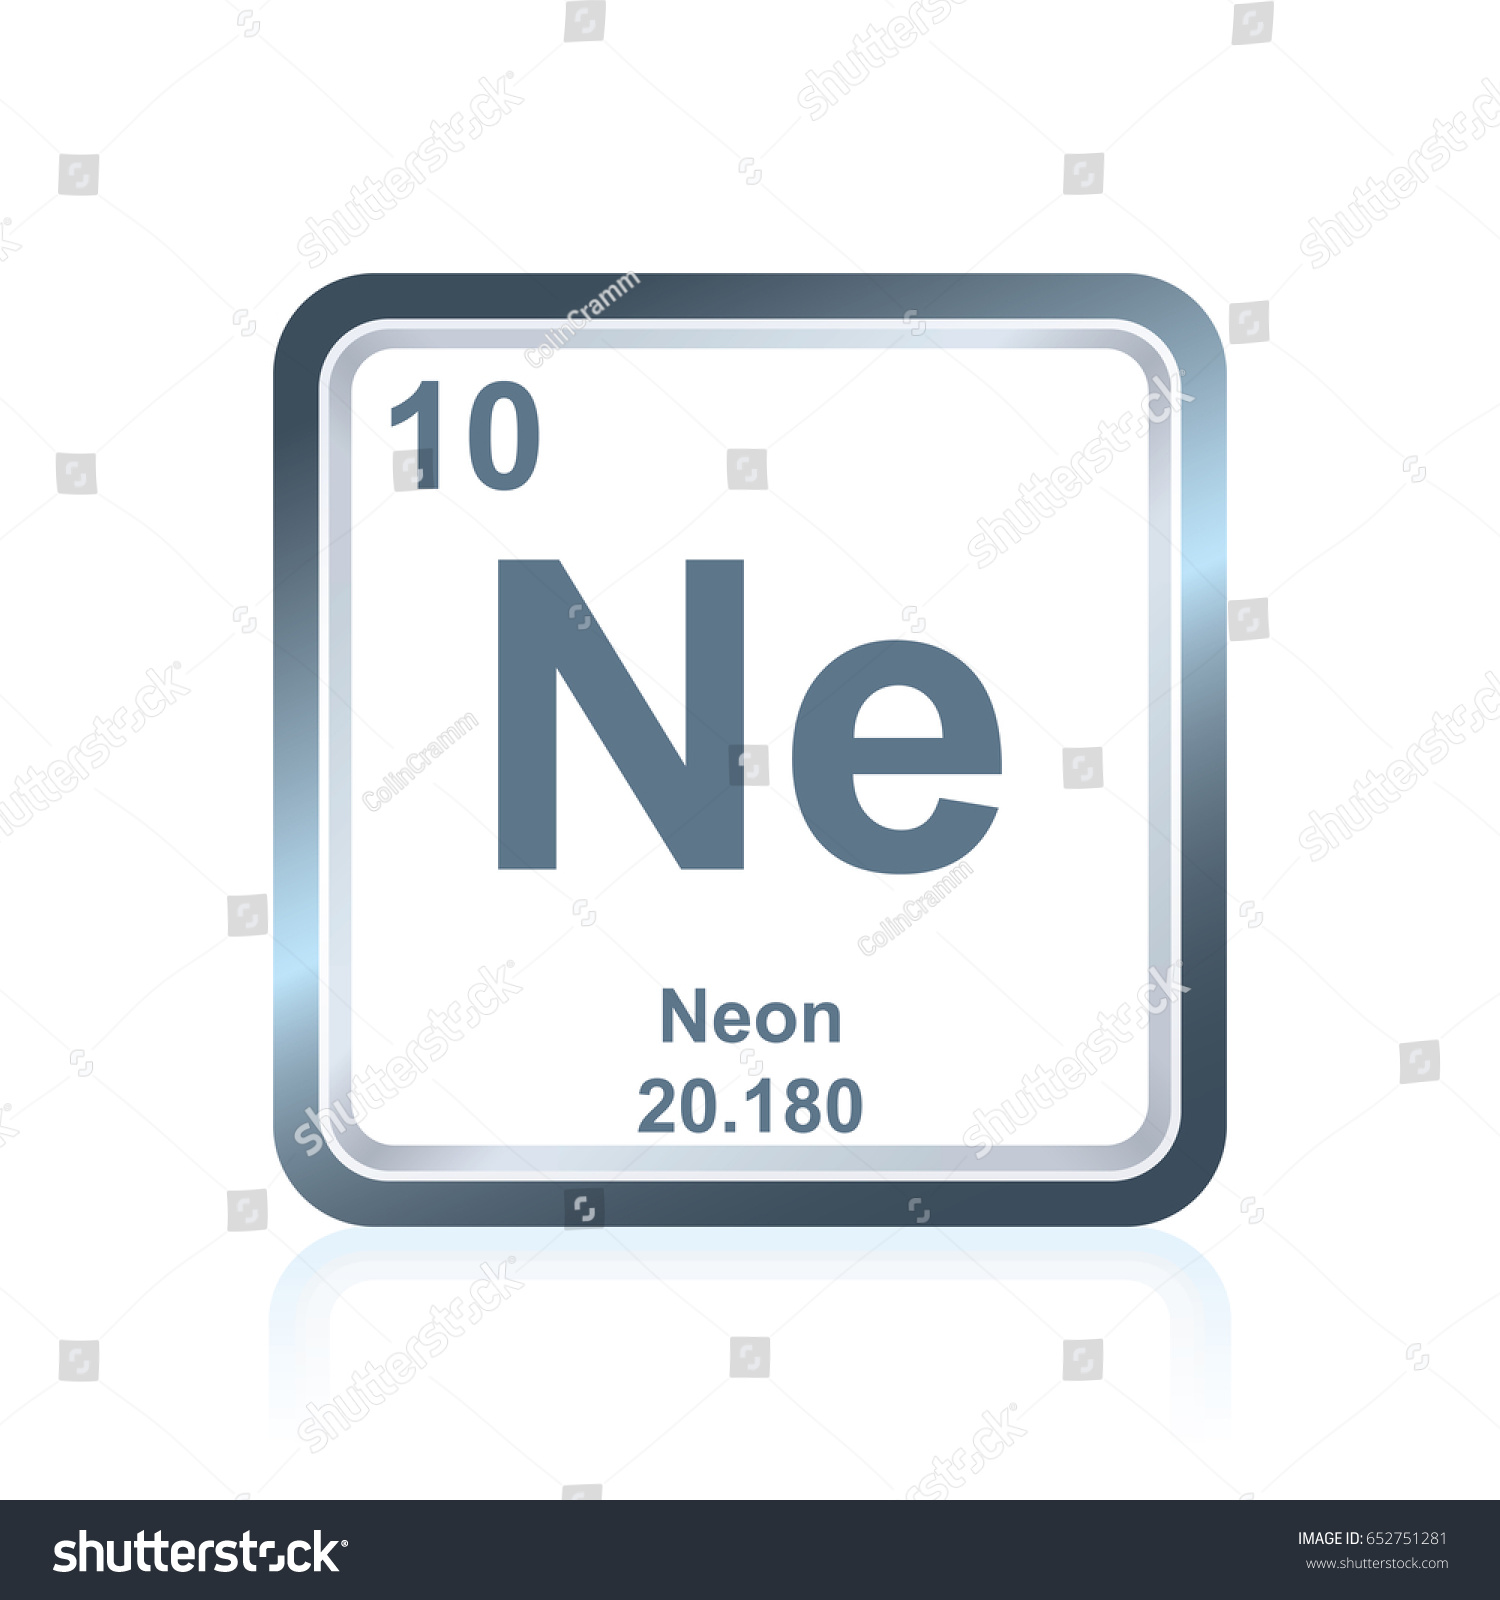 What family does silicon belong to in the periodic table images what family does silicon belong to in the periodic table image neon in the periodic table gamestrikefo Choice Image